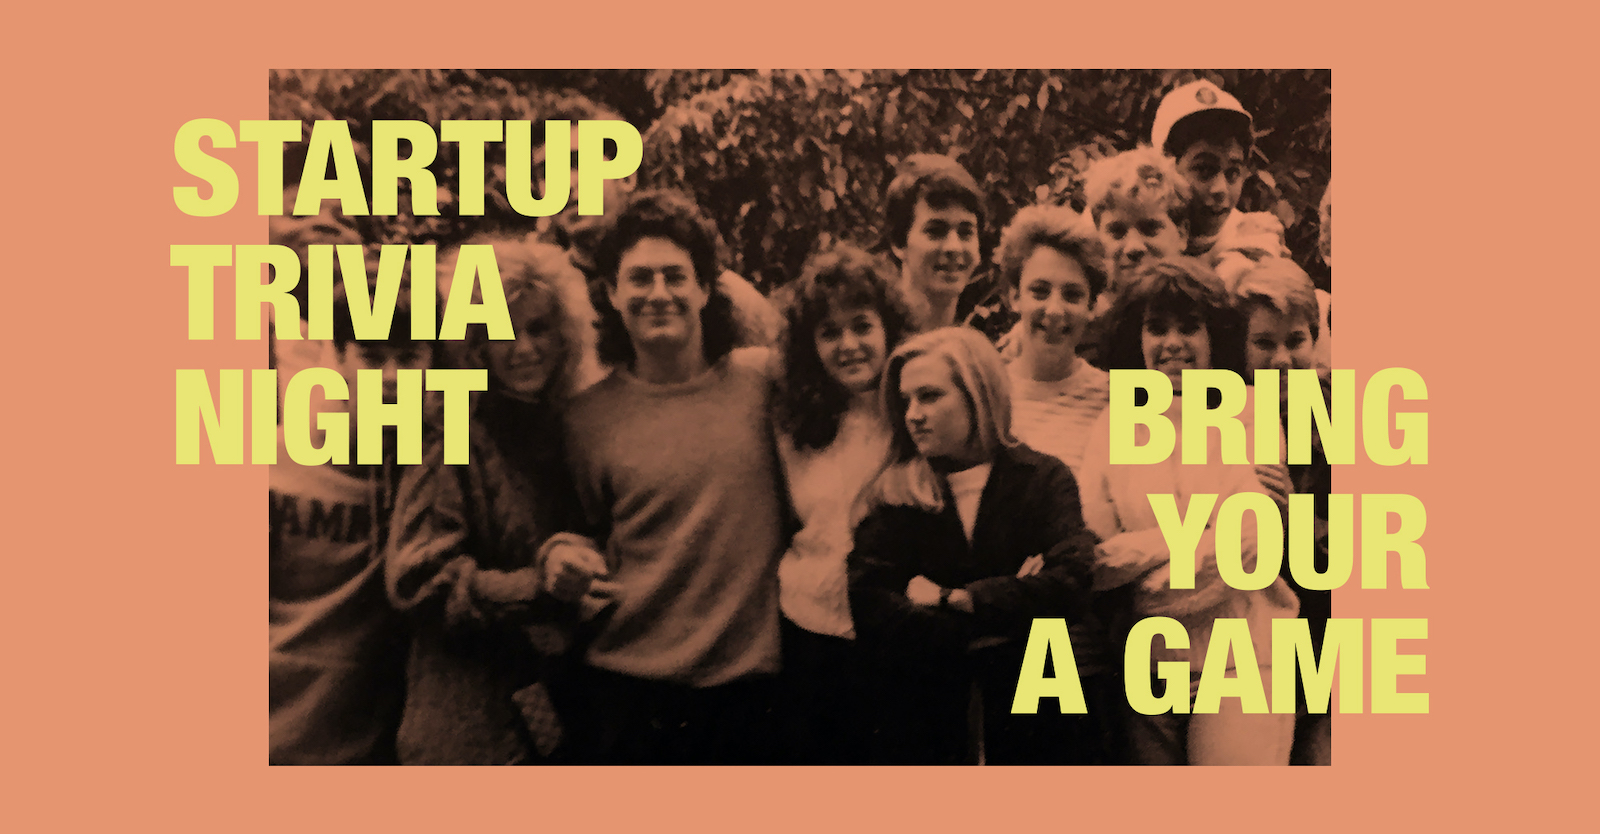 Startup Trivia night promotional graphics